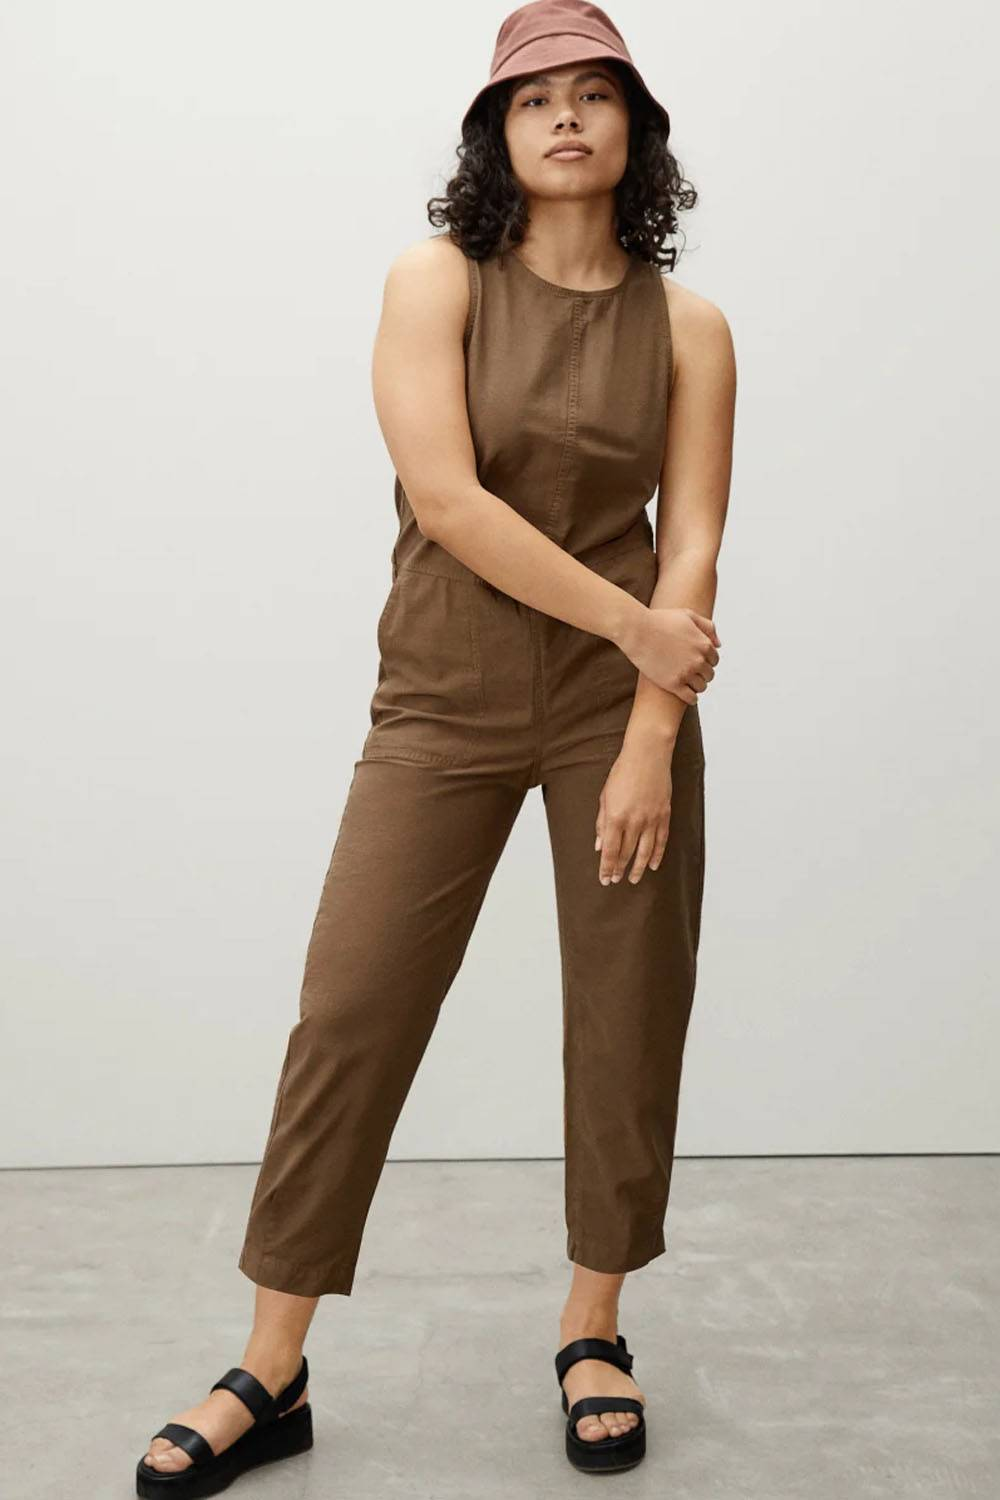 everlane affordable ethical women jumpsuit